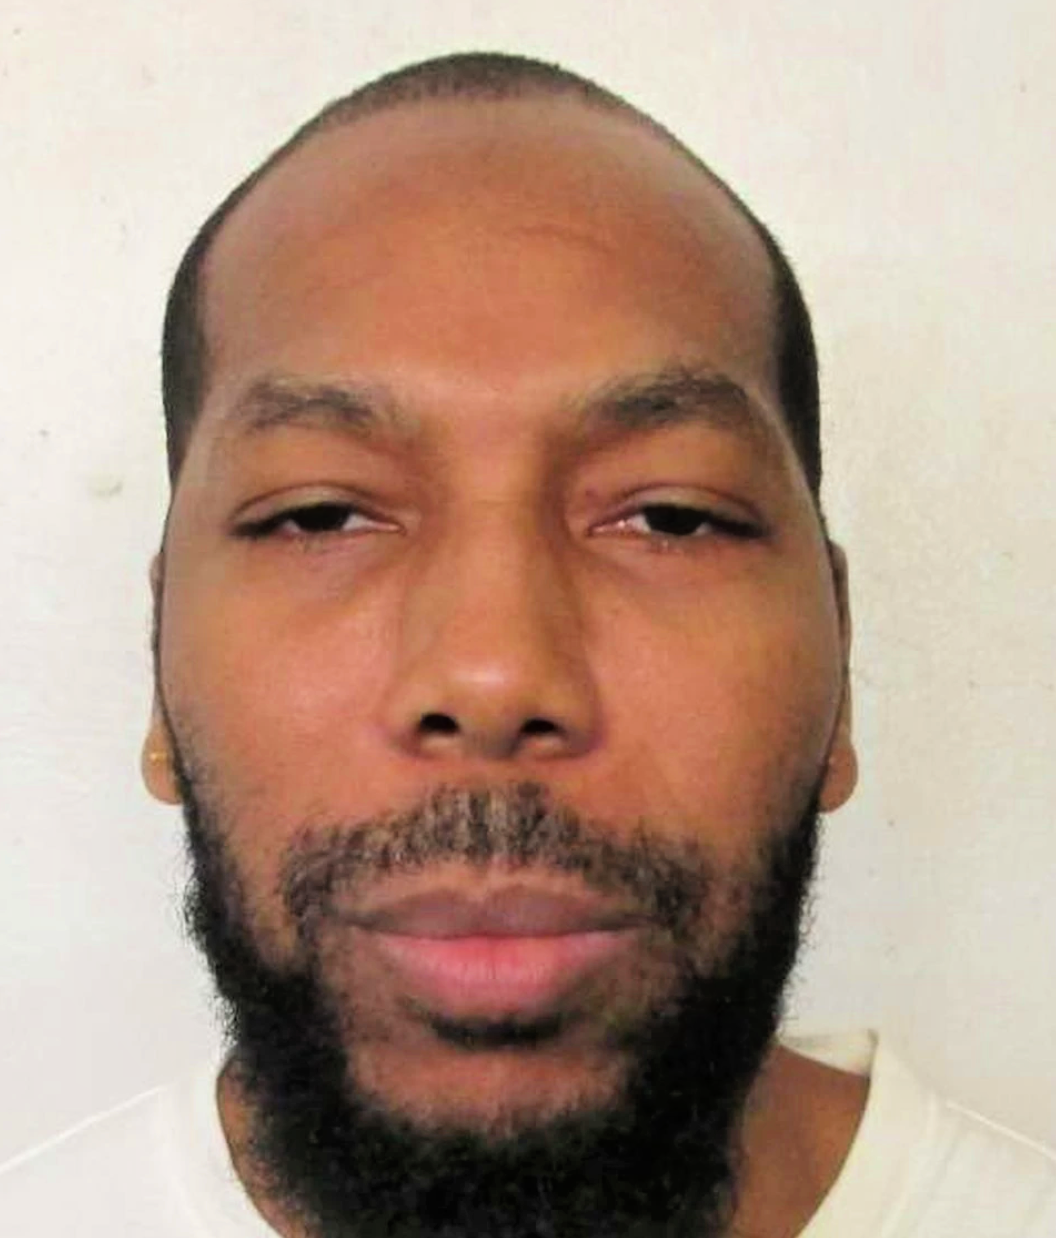 Inmate Dominique Ray as seen in this undated photo from the Alabama Department of Corrections. (Credit: ADOC)